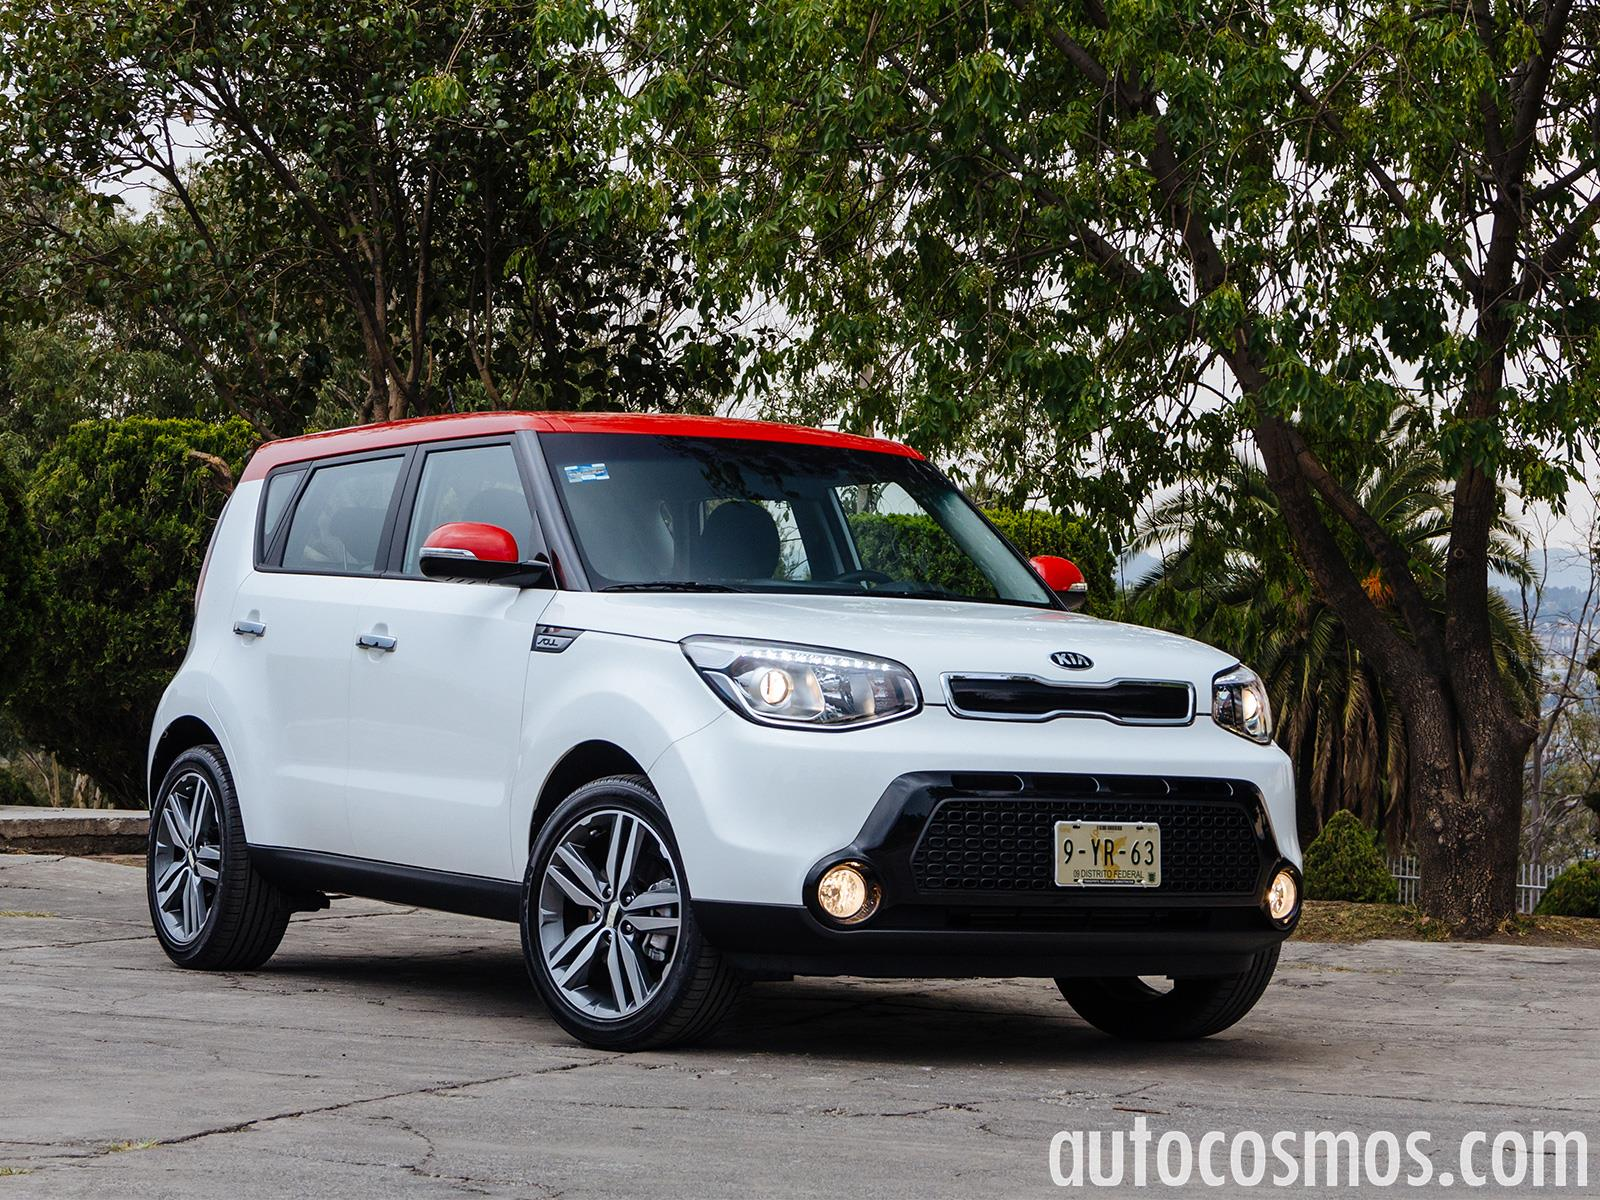 chevrolet trax images with Kia Soul 2016 A Prueba on Watch further Car Dashboard Warning Lights The  plete Guide further 2017 further Chevrolet Ss Gets Expressive With Addition Of New Color Choices For 2015 together with Chevrolet Ss Gets Expressive With Addition Of New Color Choices For 2015.